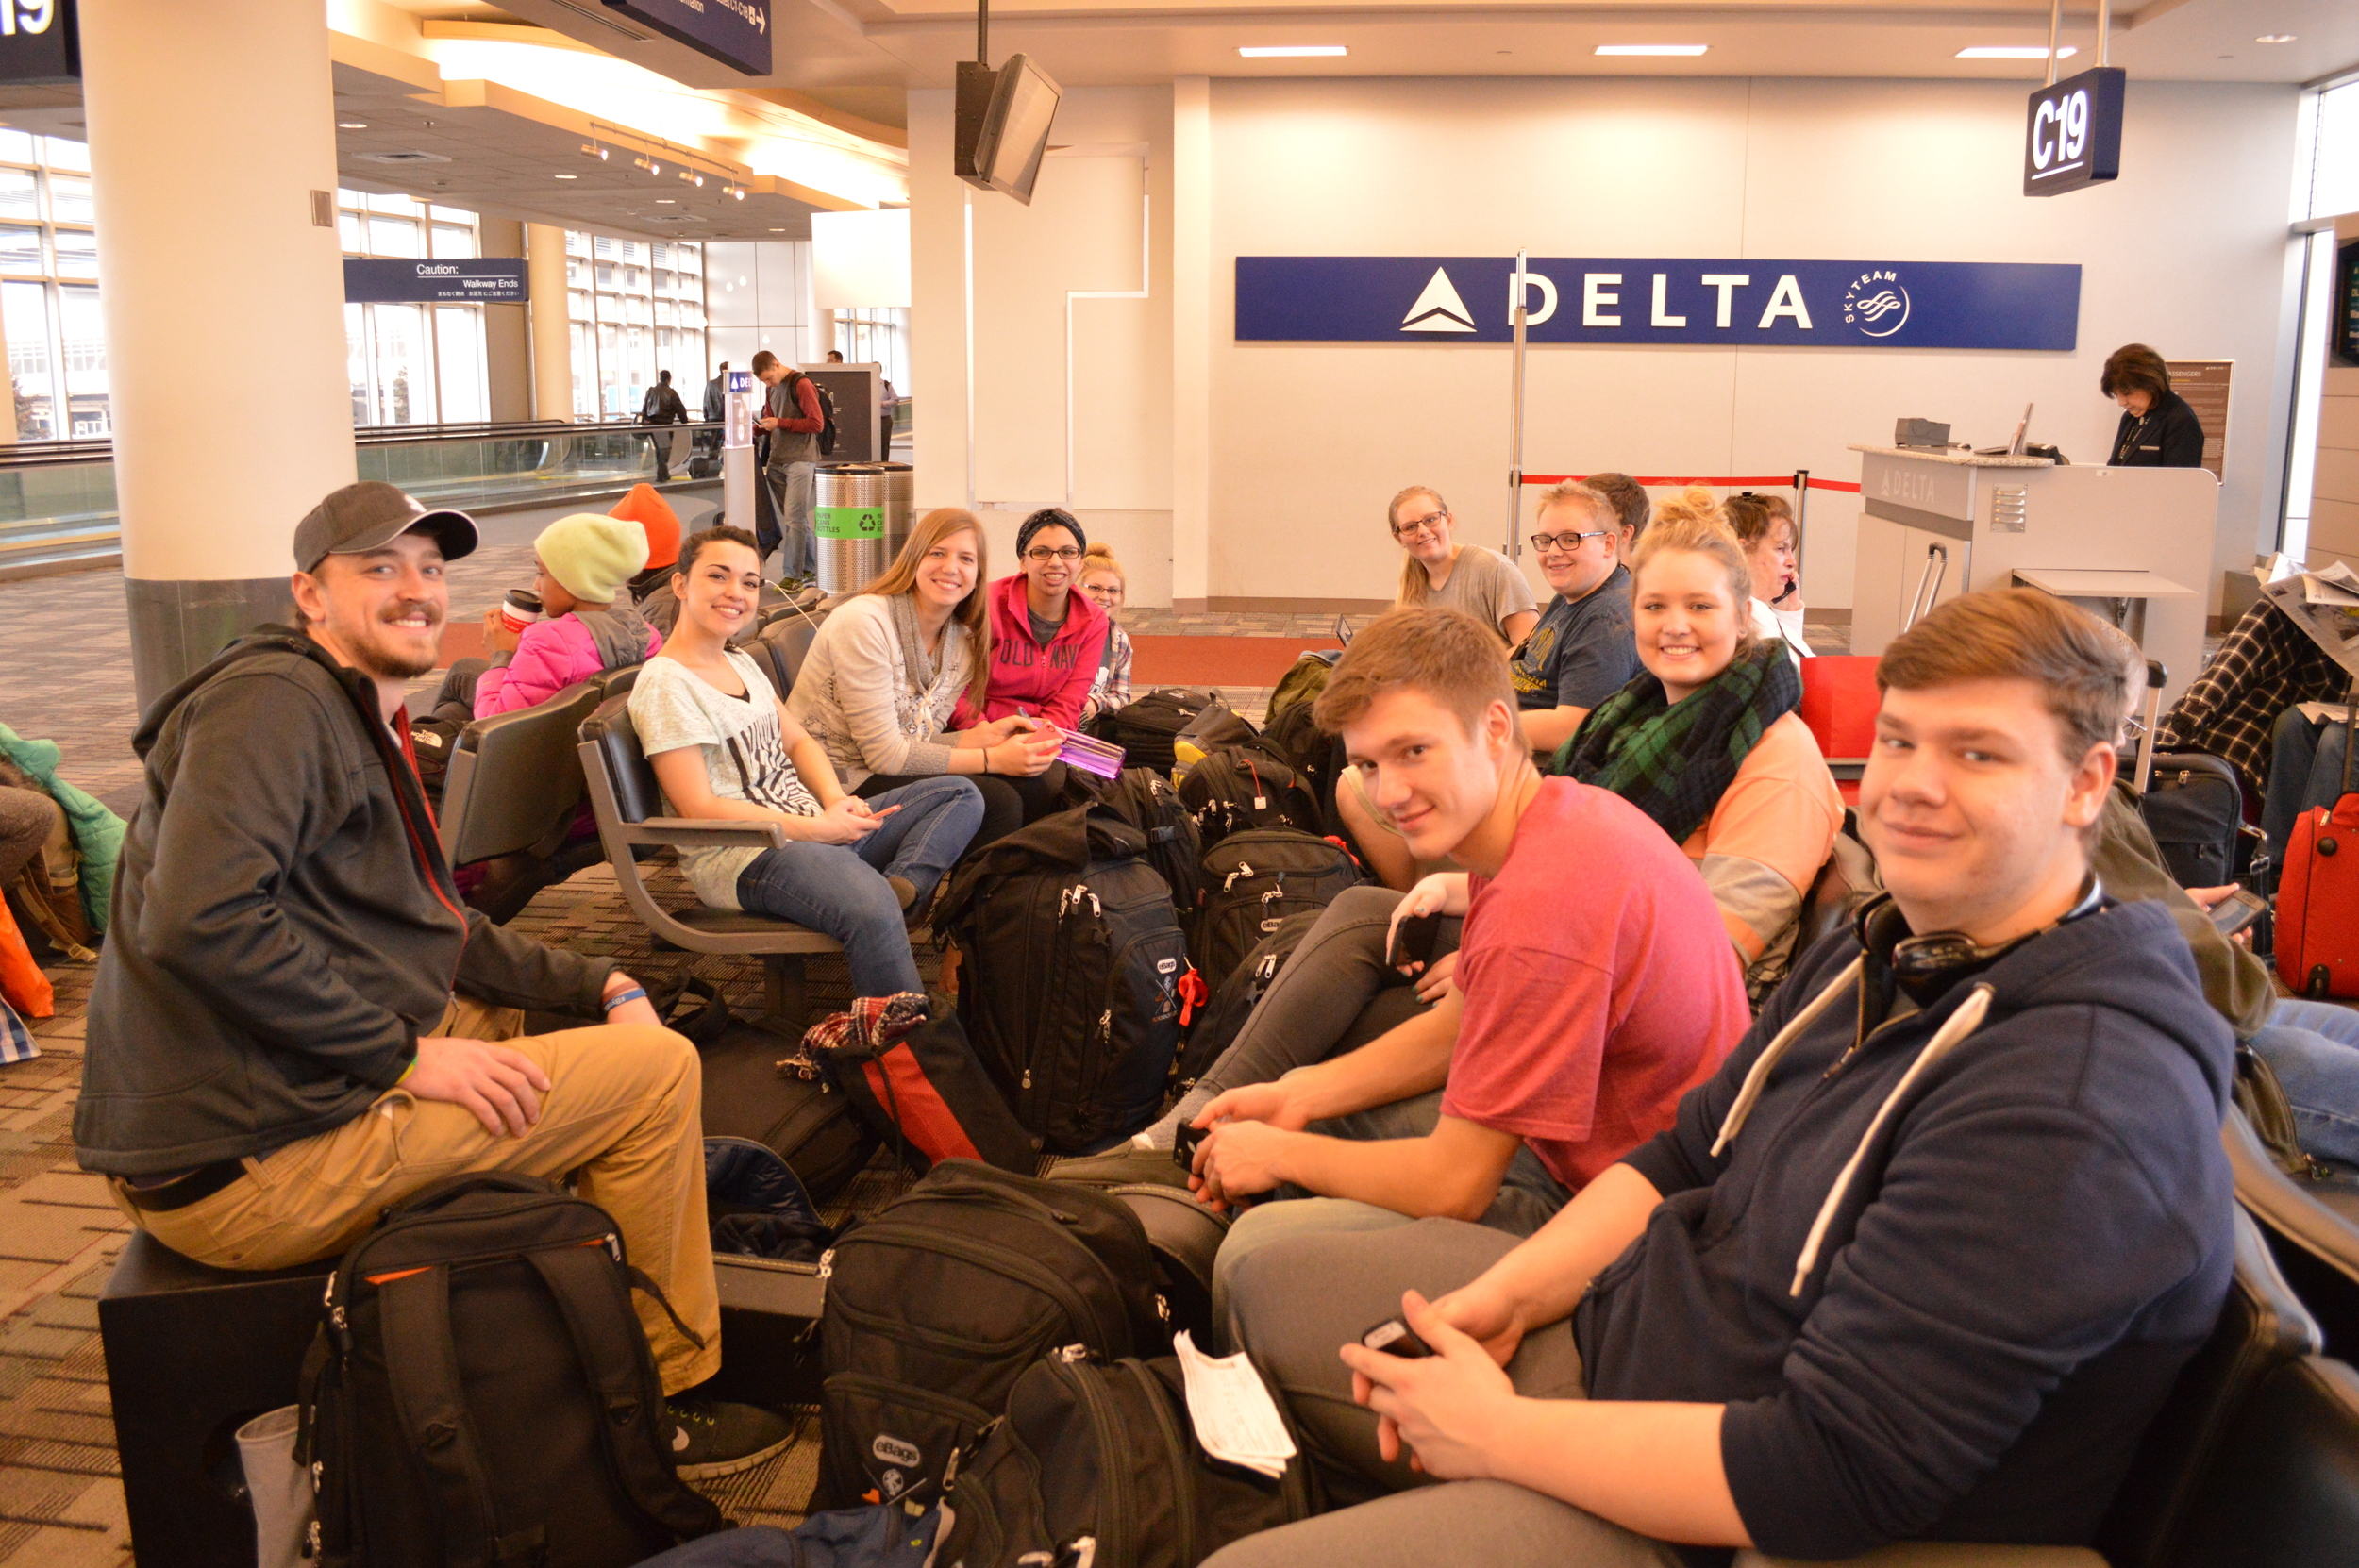 Waiting to board our flight to South Africa!